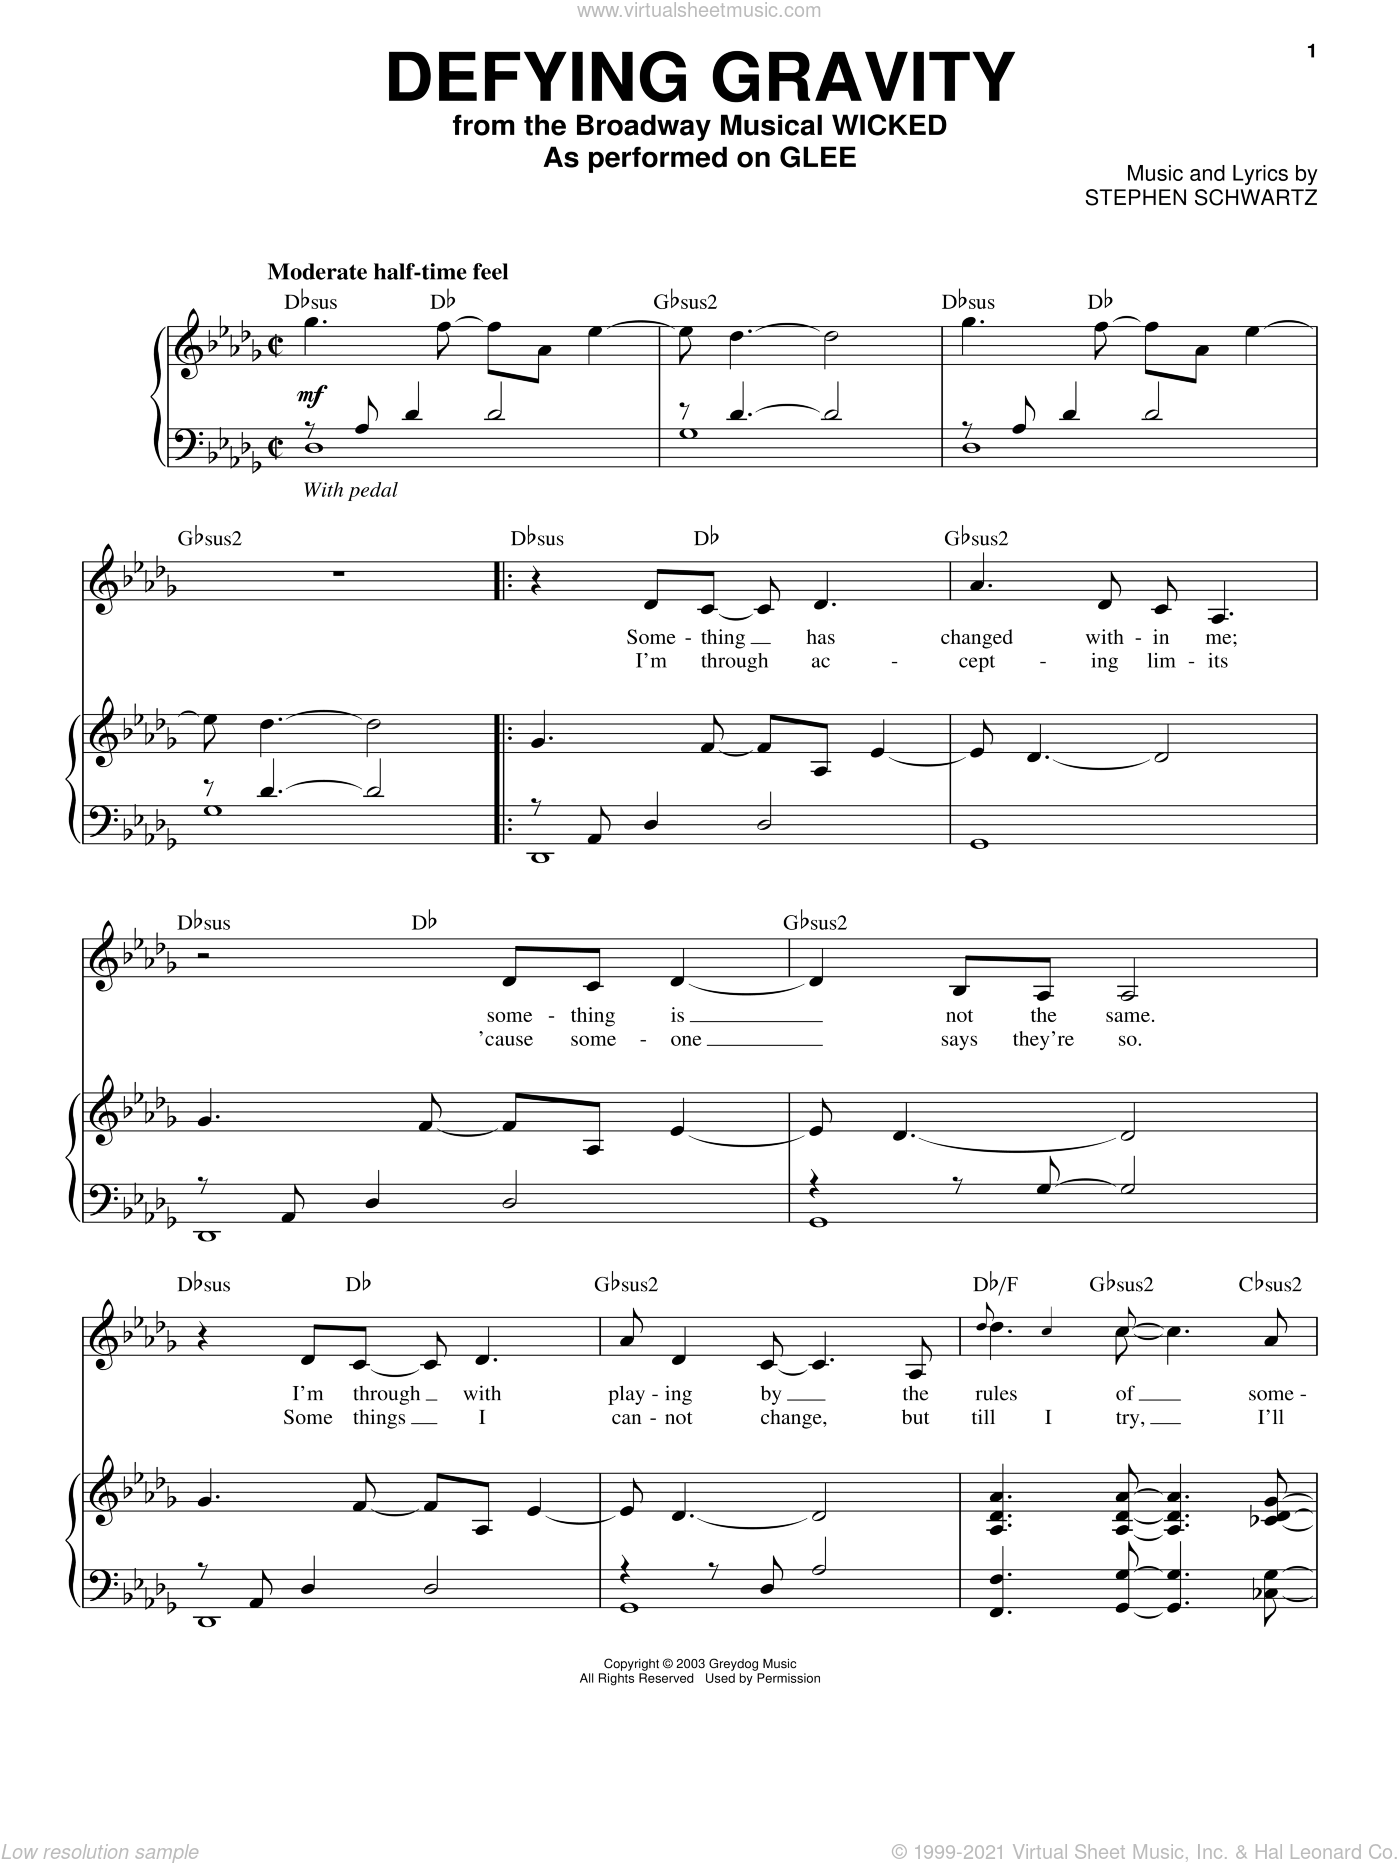 Defying Gravity sheet music for voice and piano by Glee Cast, Miscellaneous and Stephen Schwartz, intermediate skill level